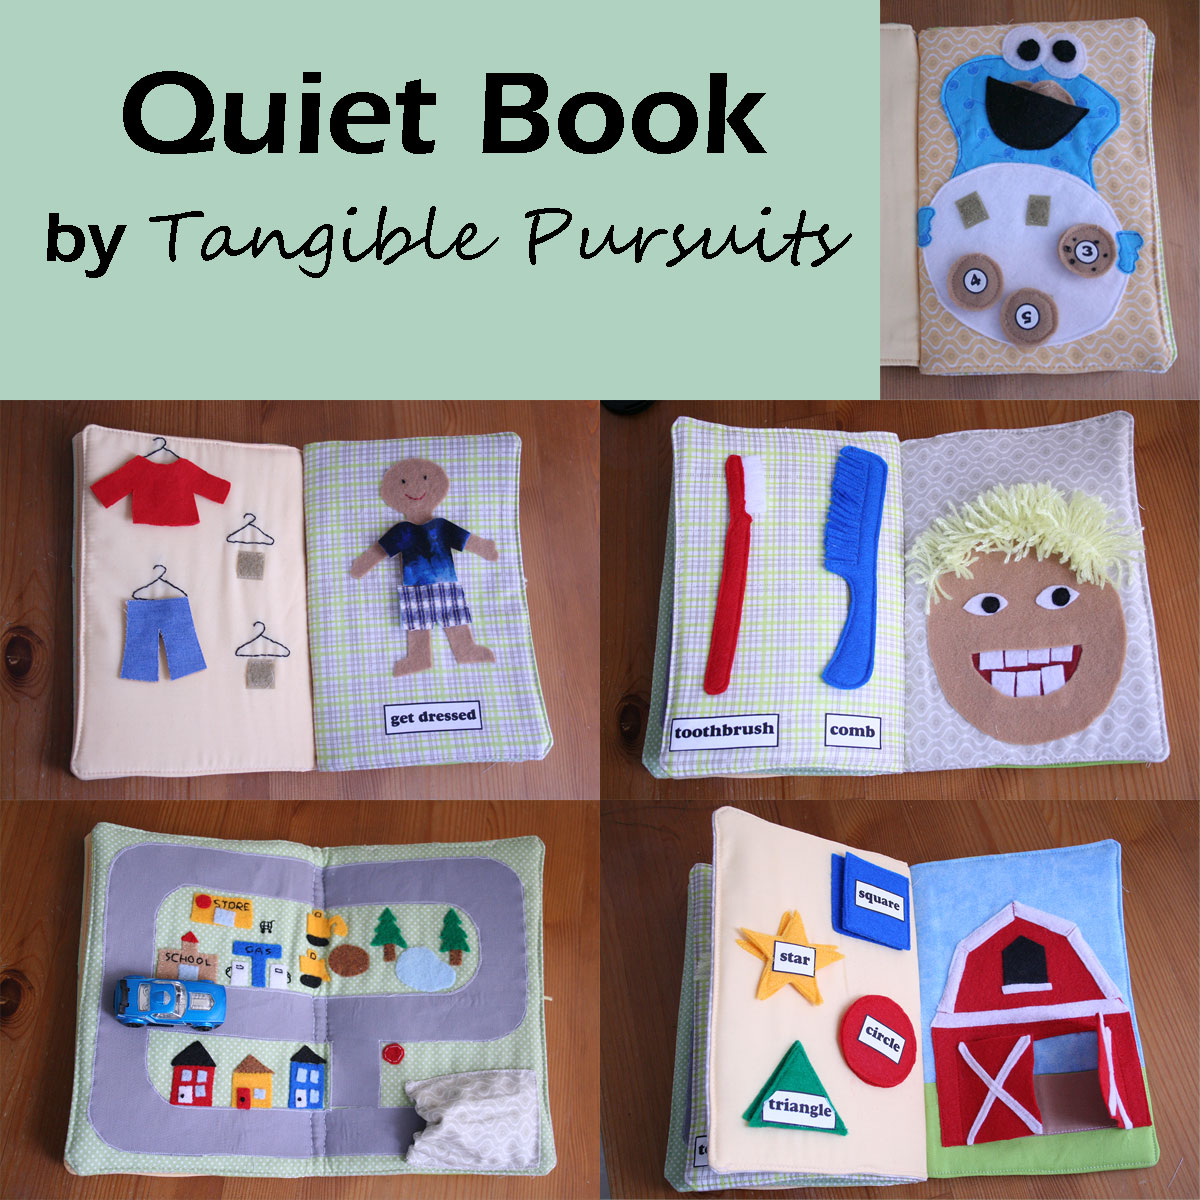 Quiet Book Cover Template : Tangible pursuits quiet book